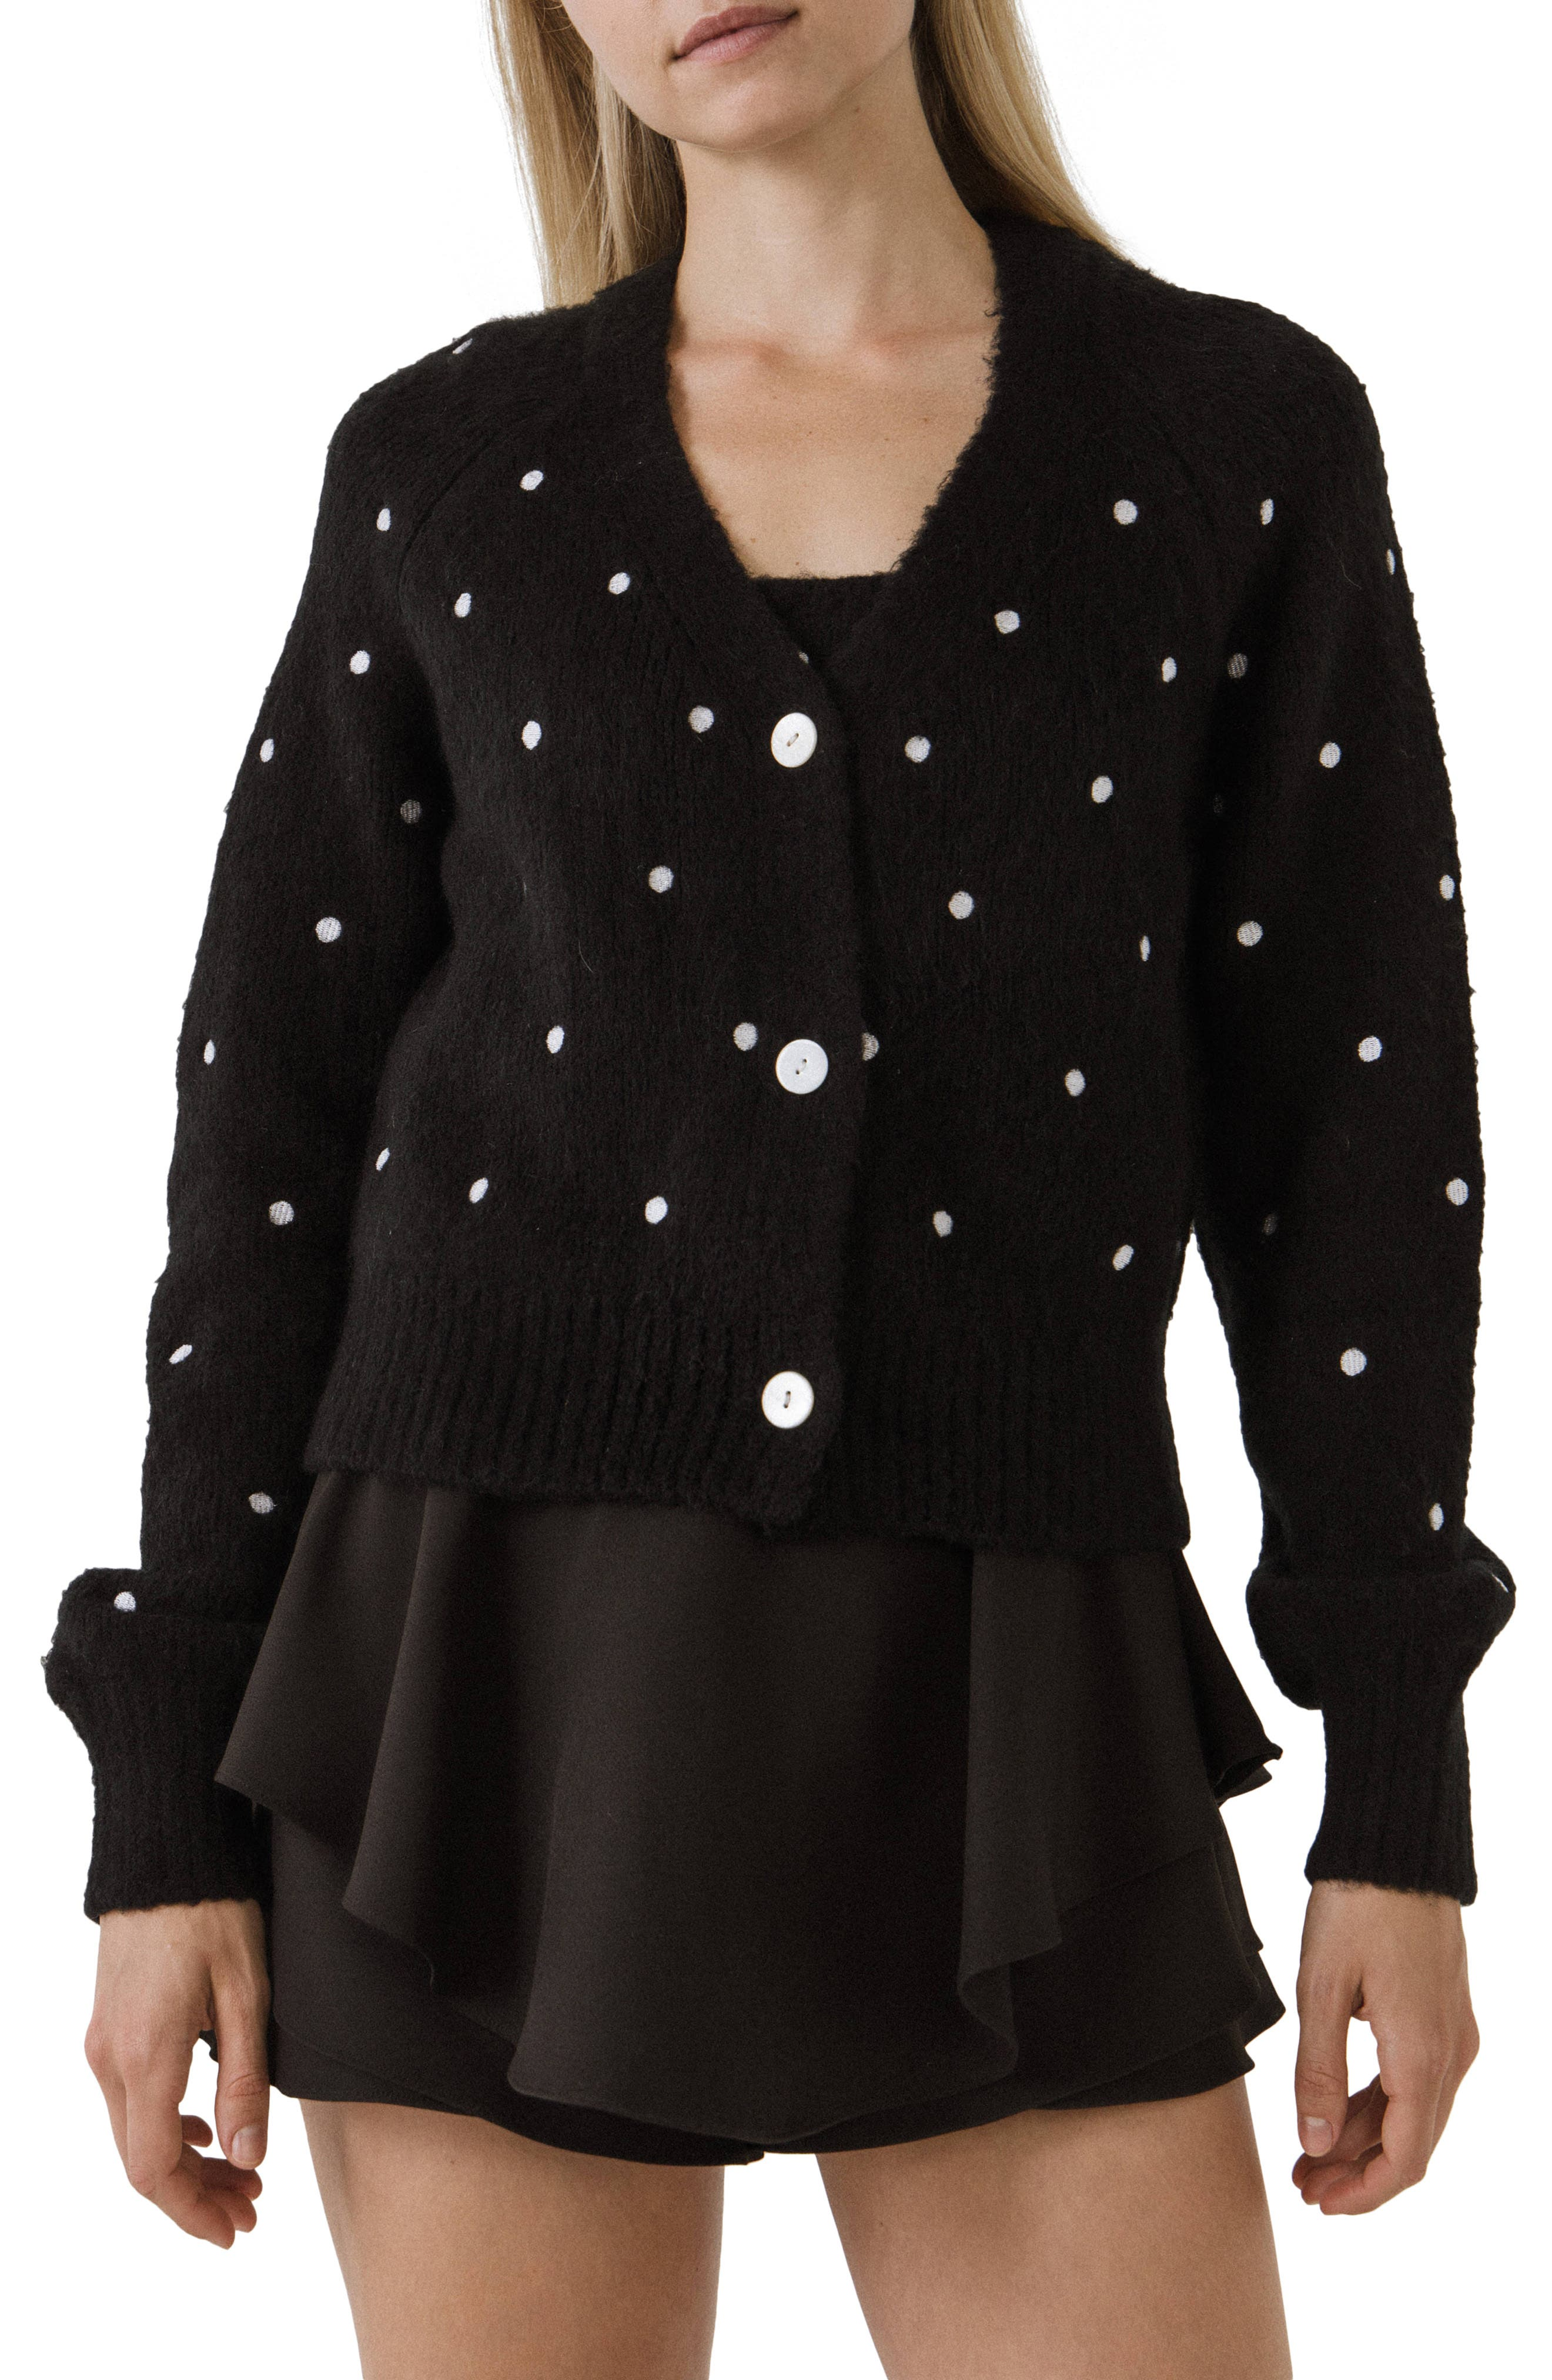 Dot Embroidered Cardigan